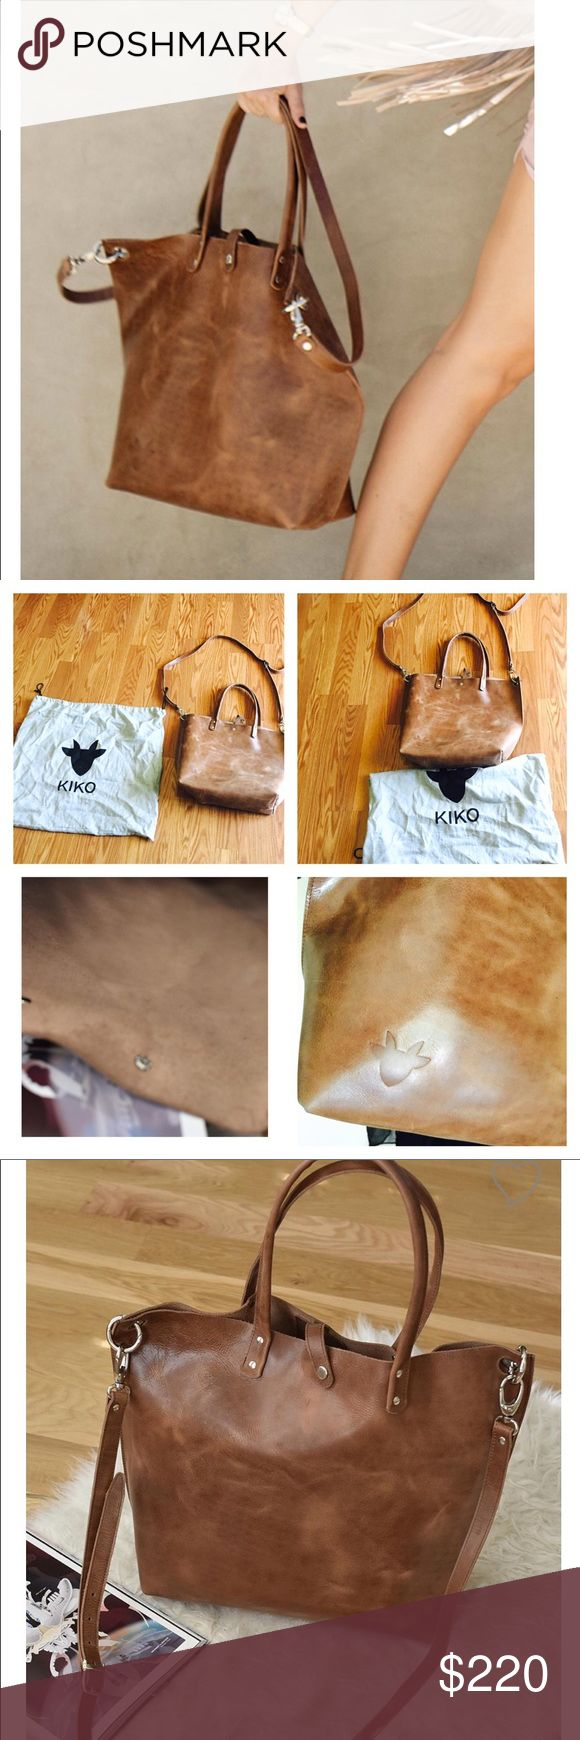 NWOT Genuine leather bag by KIKO, paseo tote NWOT the paseo tote is made with smooth, warm caramel colored Genuine leather, on the body, top closet and strap for a cohesive style. Interior is unlined and straps are removable, made by KIKO kiko Bags Totes